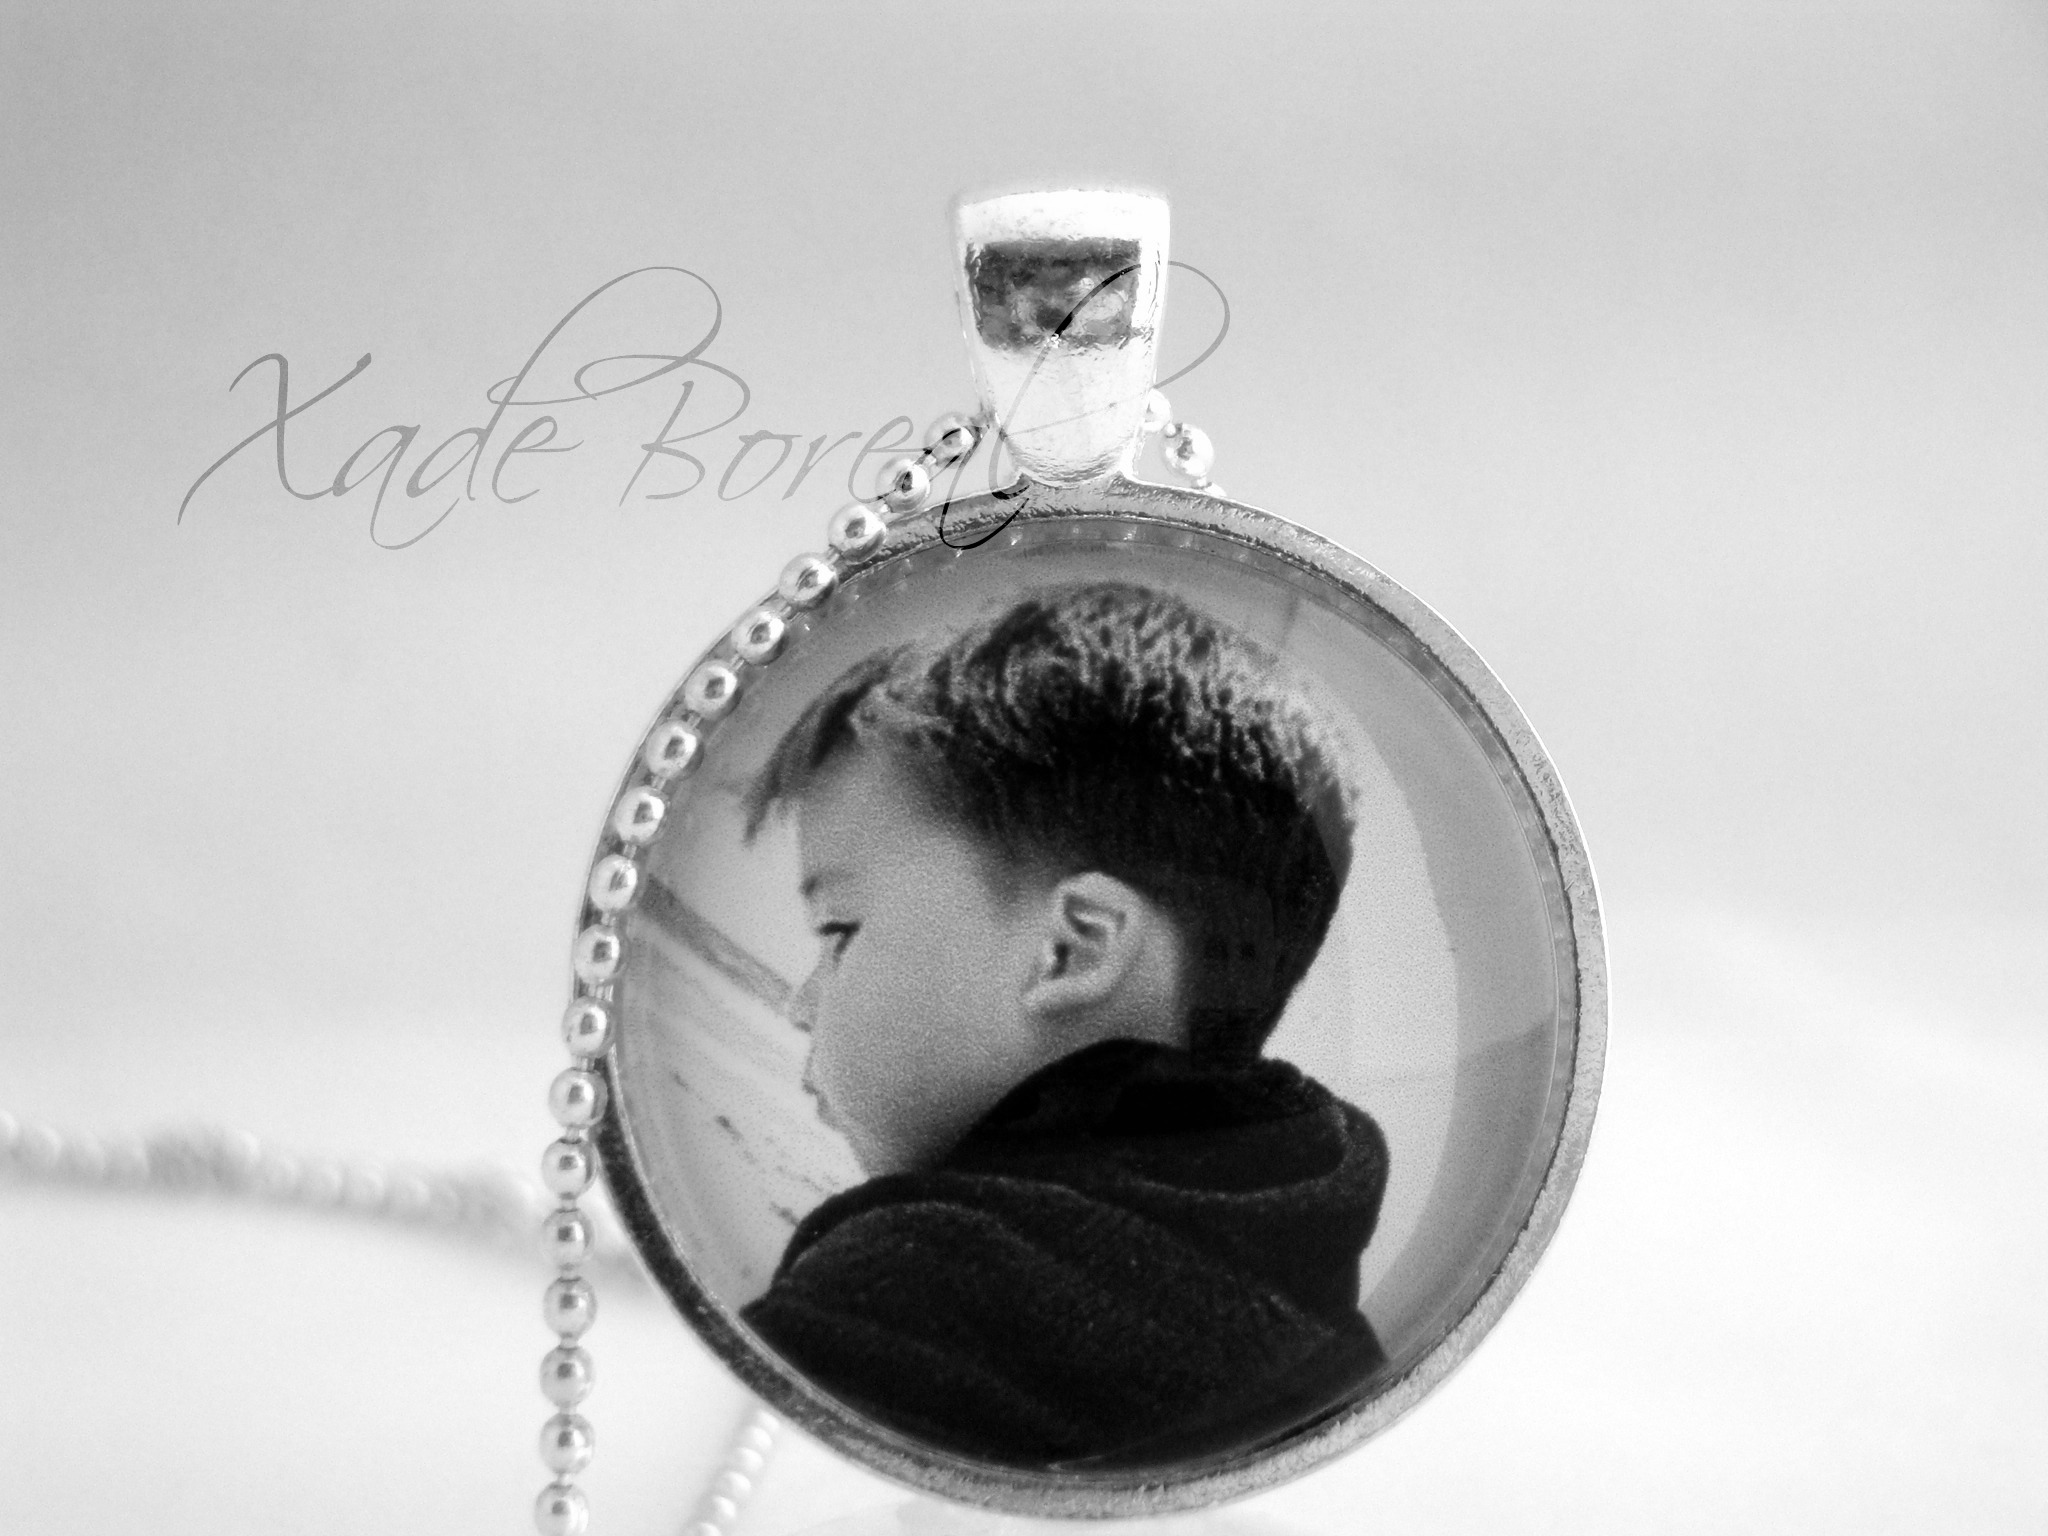 images custom onecklace personalized of its best you today amazing your name silver necklaces create gold on pendant an nameplate offers perfect s necklace it onecklaces all engraved range about jewelry